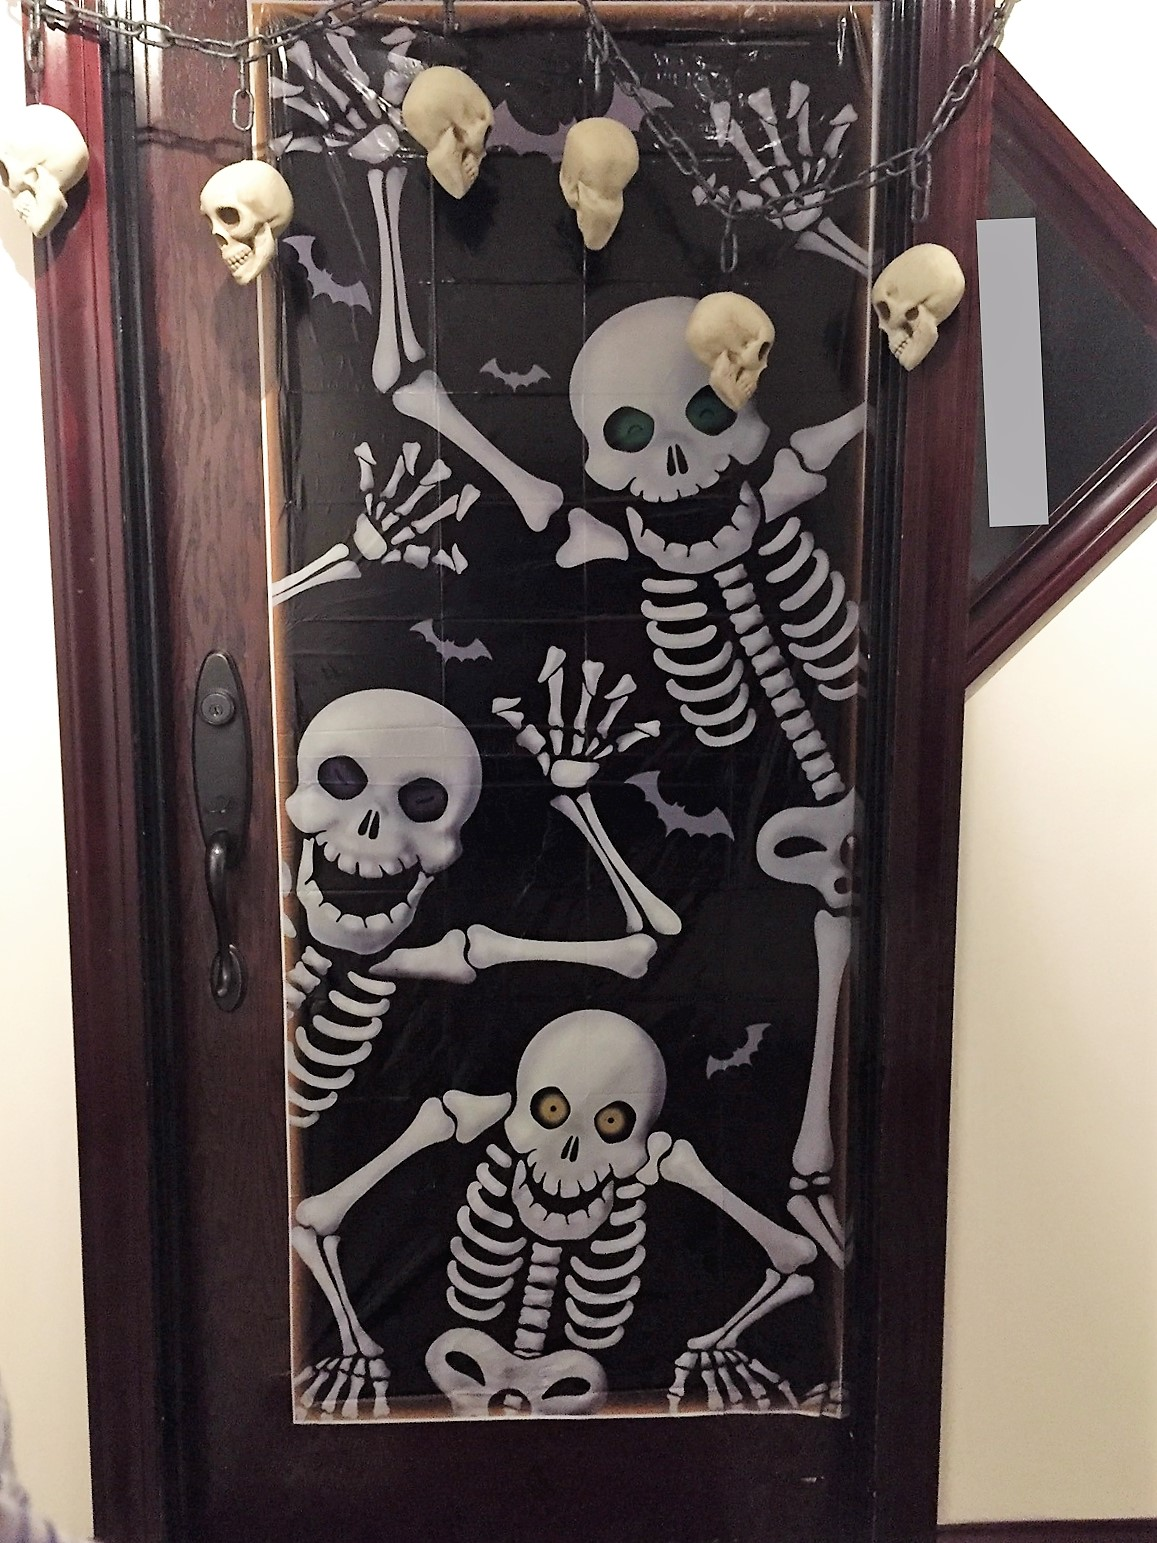 Entry 3 - Jared Doe - Dancing Skeletons and Chained Skulls